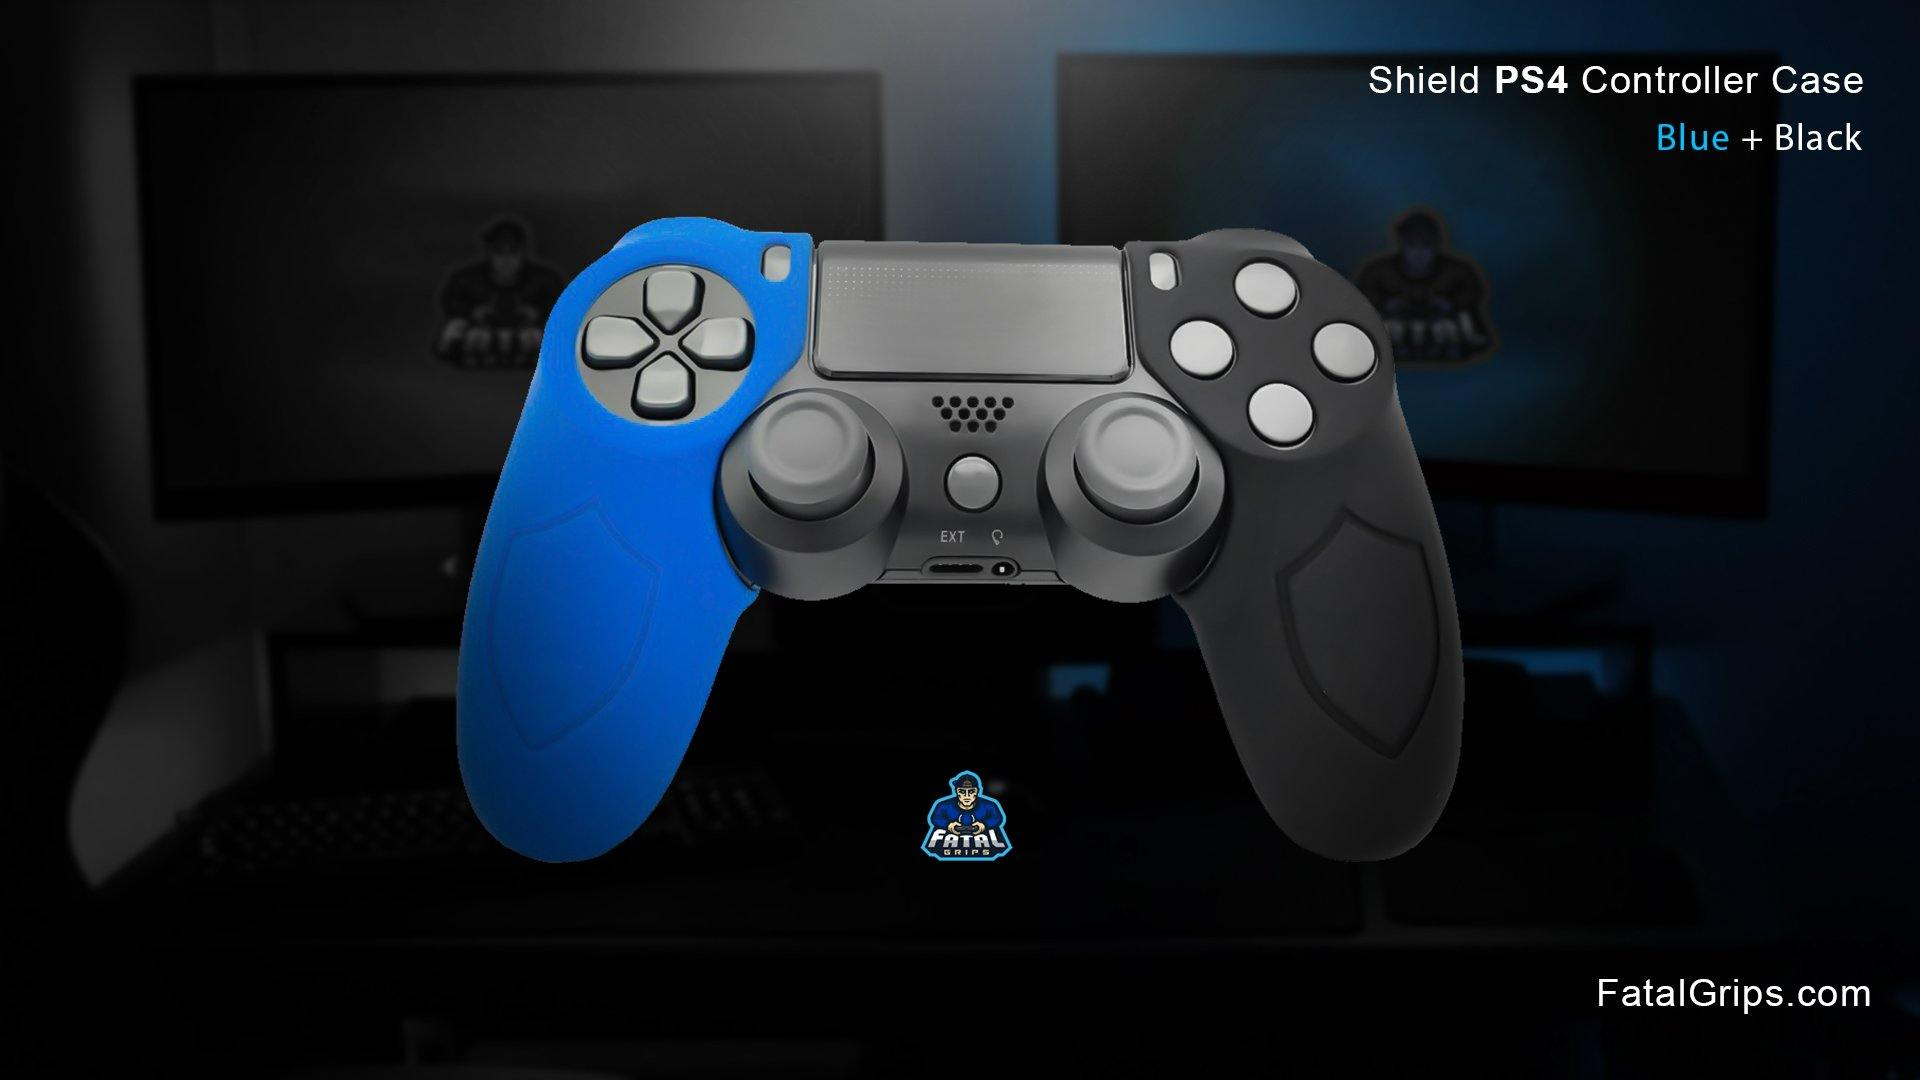 Blue/Black PS4 Shield Controller Case - fatalgrips